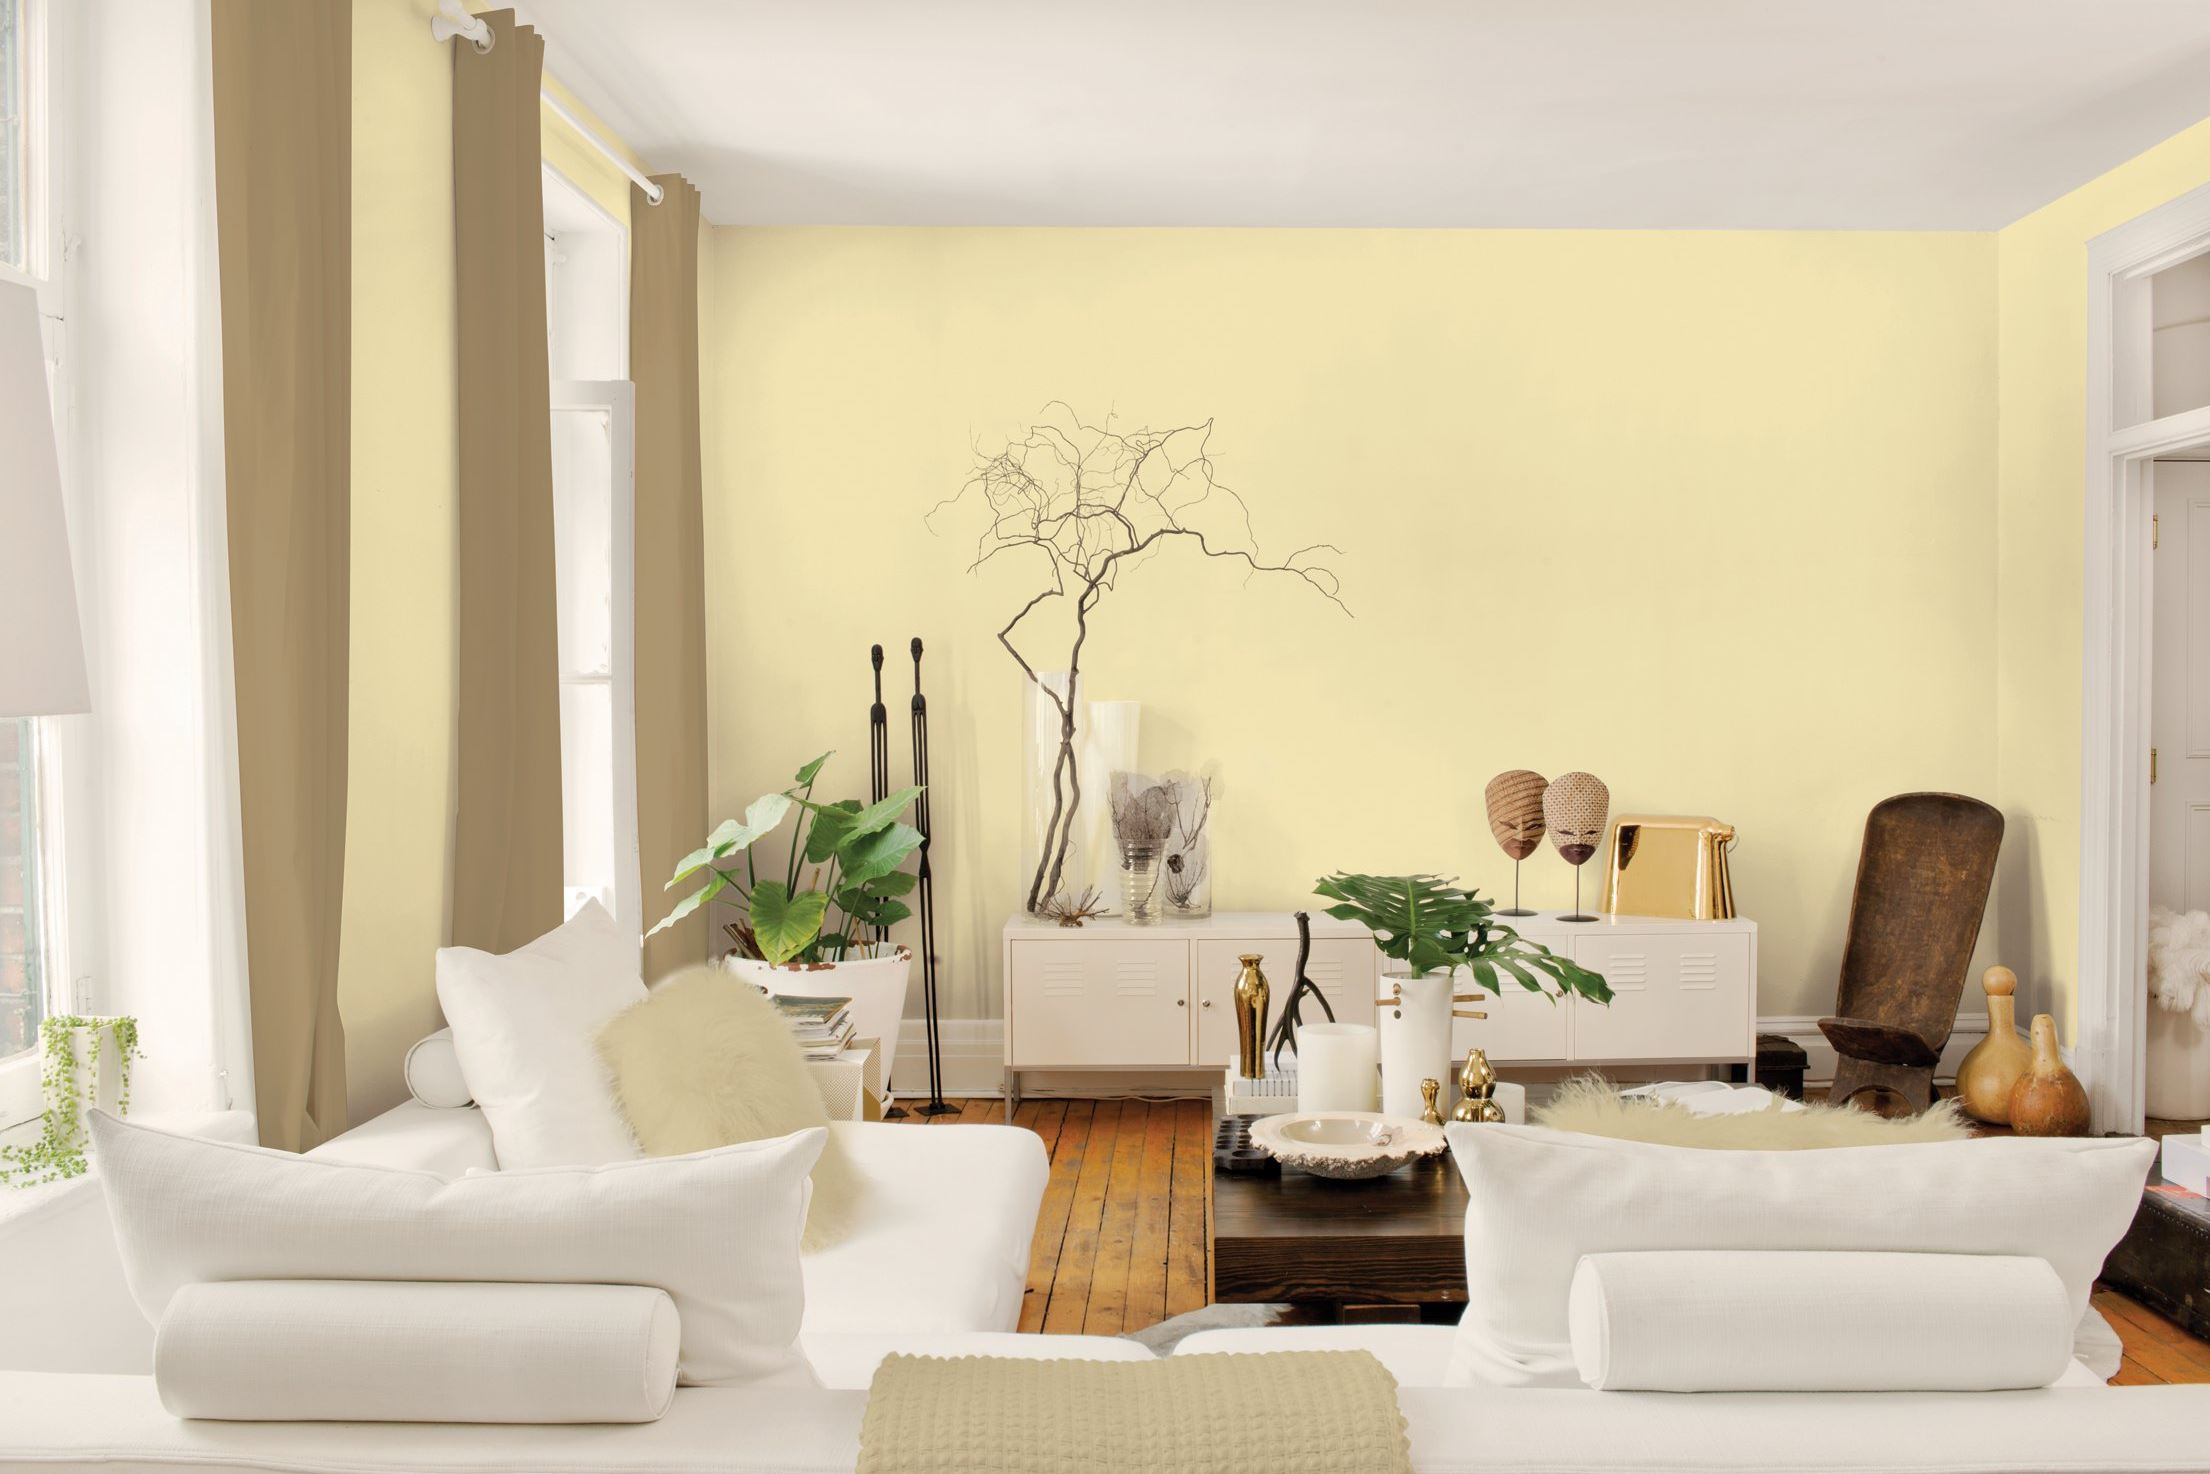 Best ideas about Wall Paint Colors . Save or Pin Inspirations Paint Colors For Walls MidCityEast Now.